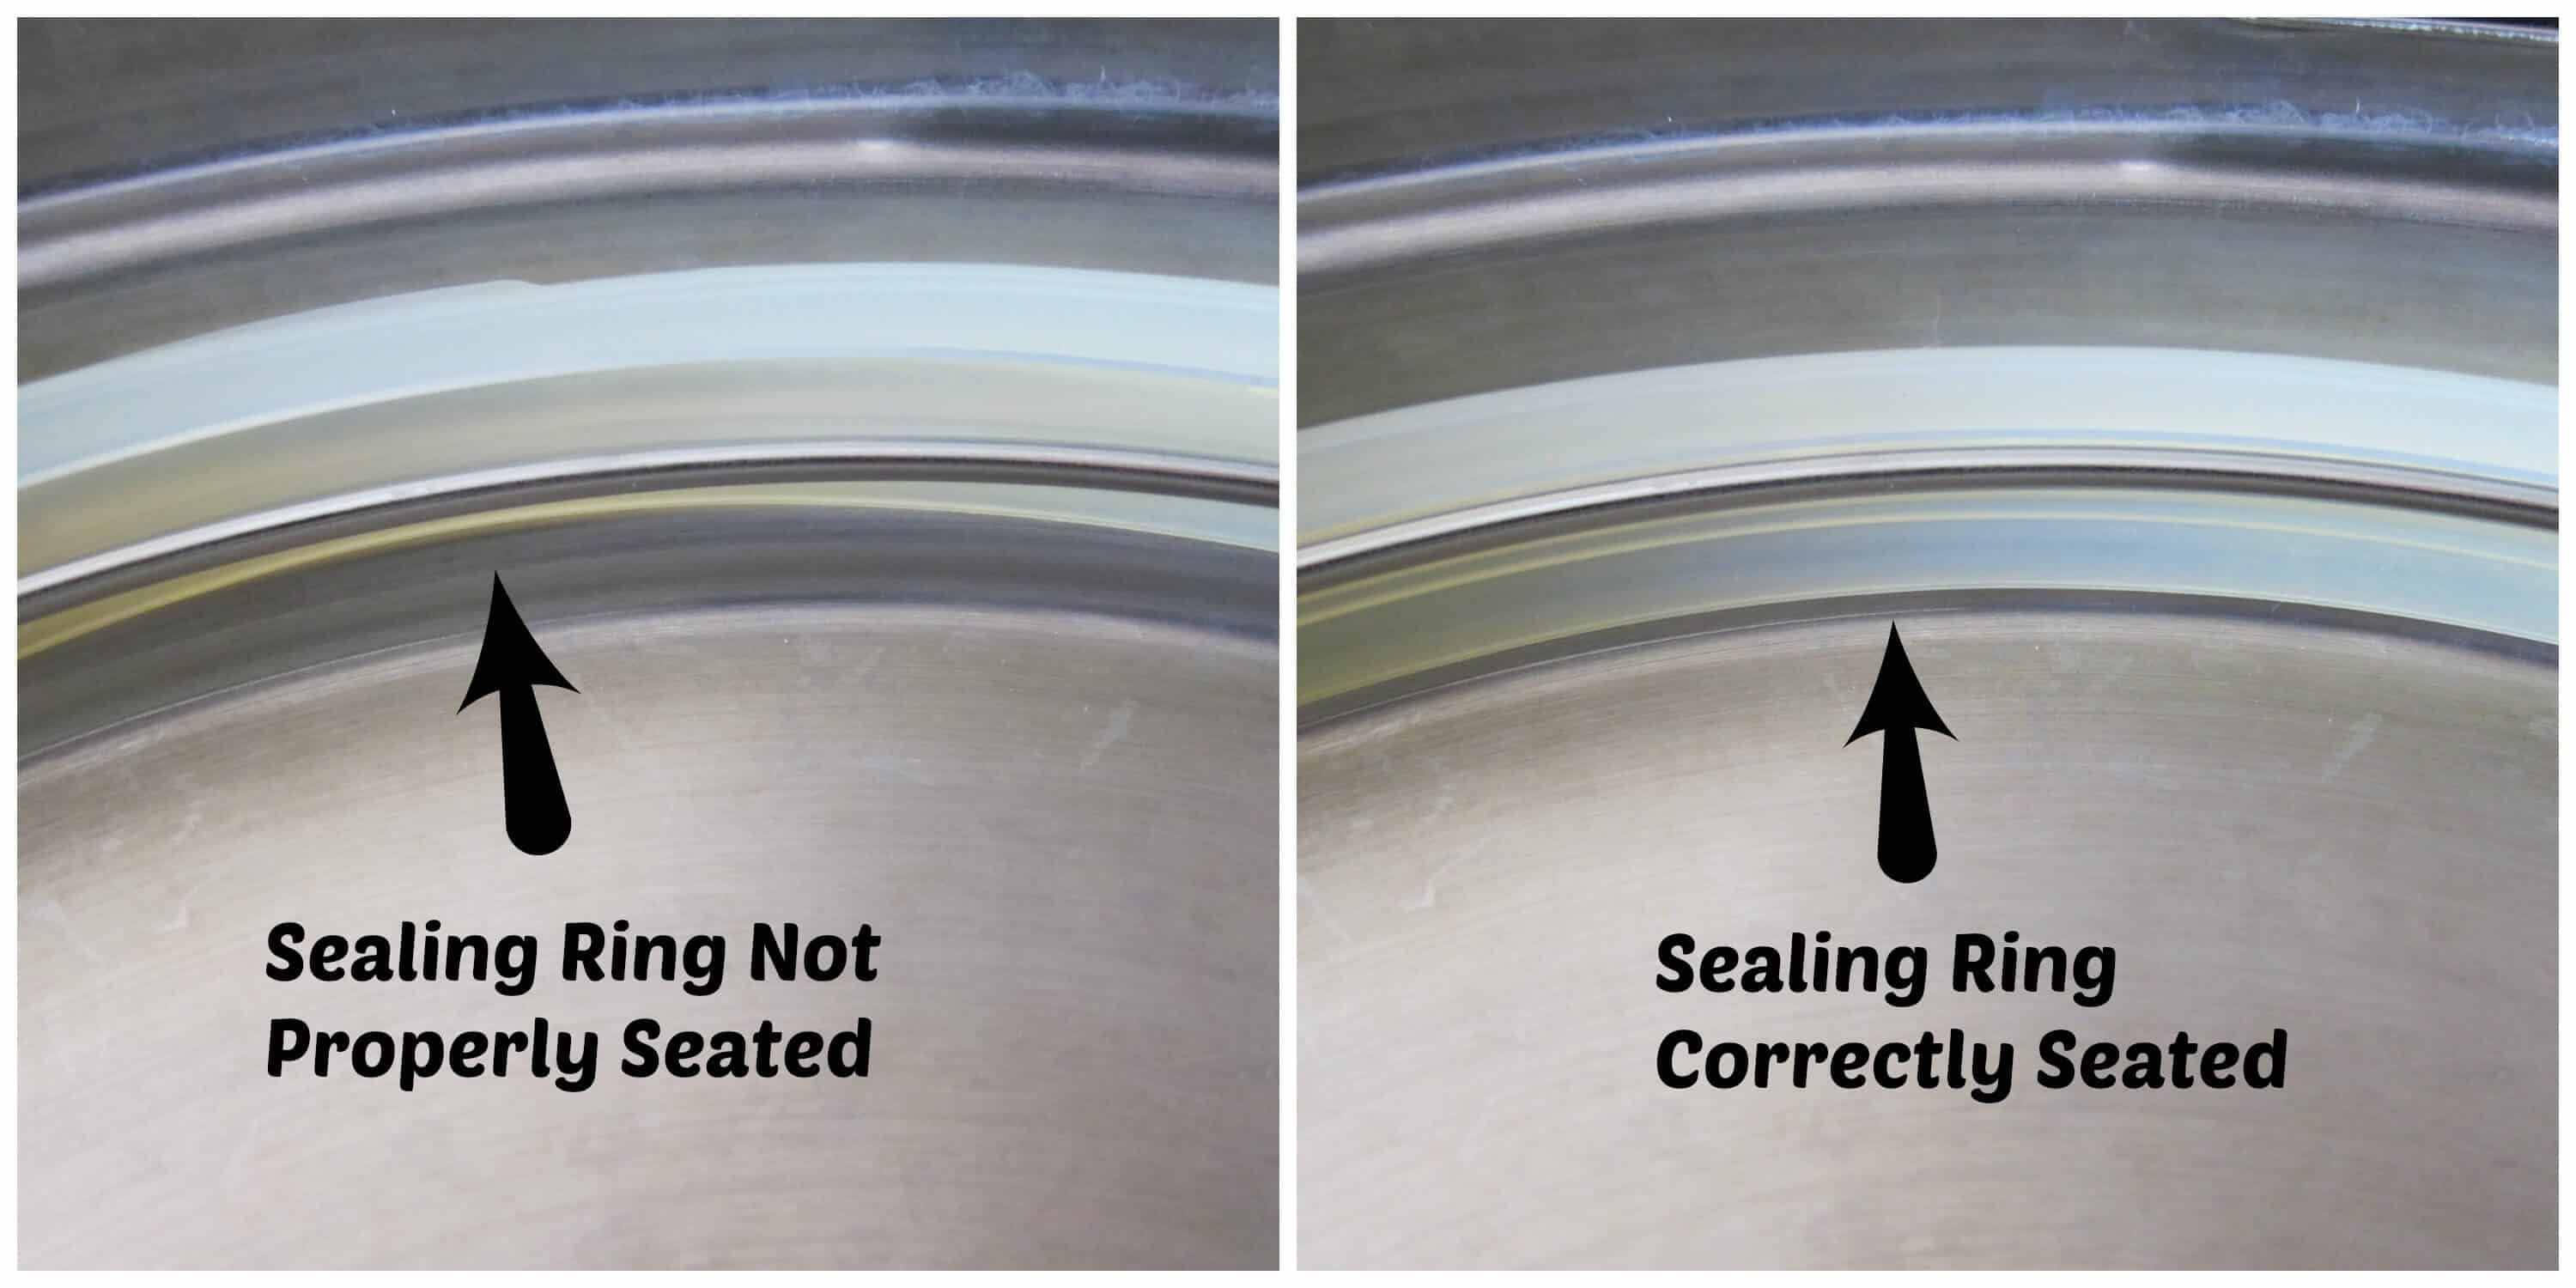 Sealing ring not seated properly and seated properly